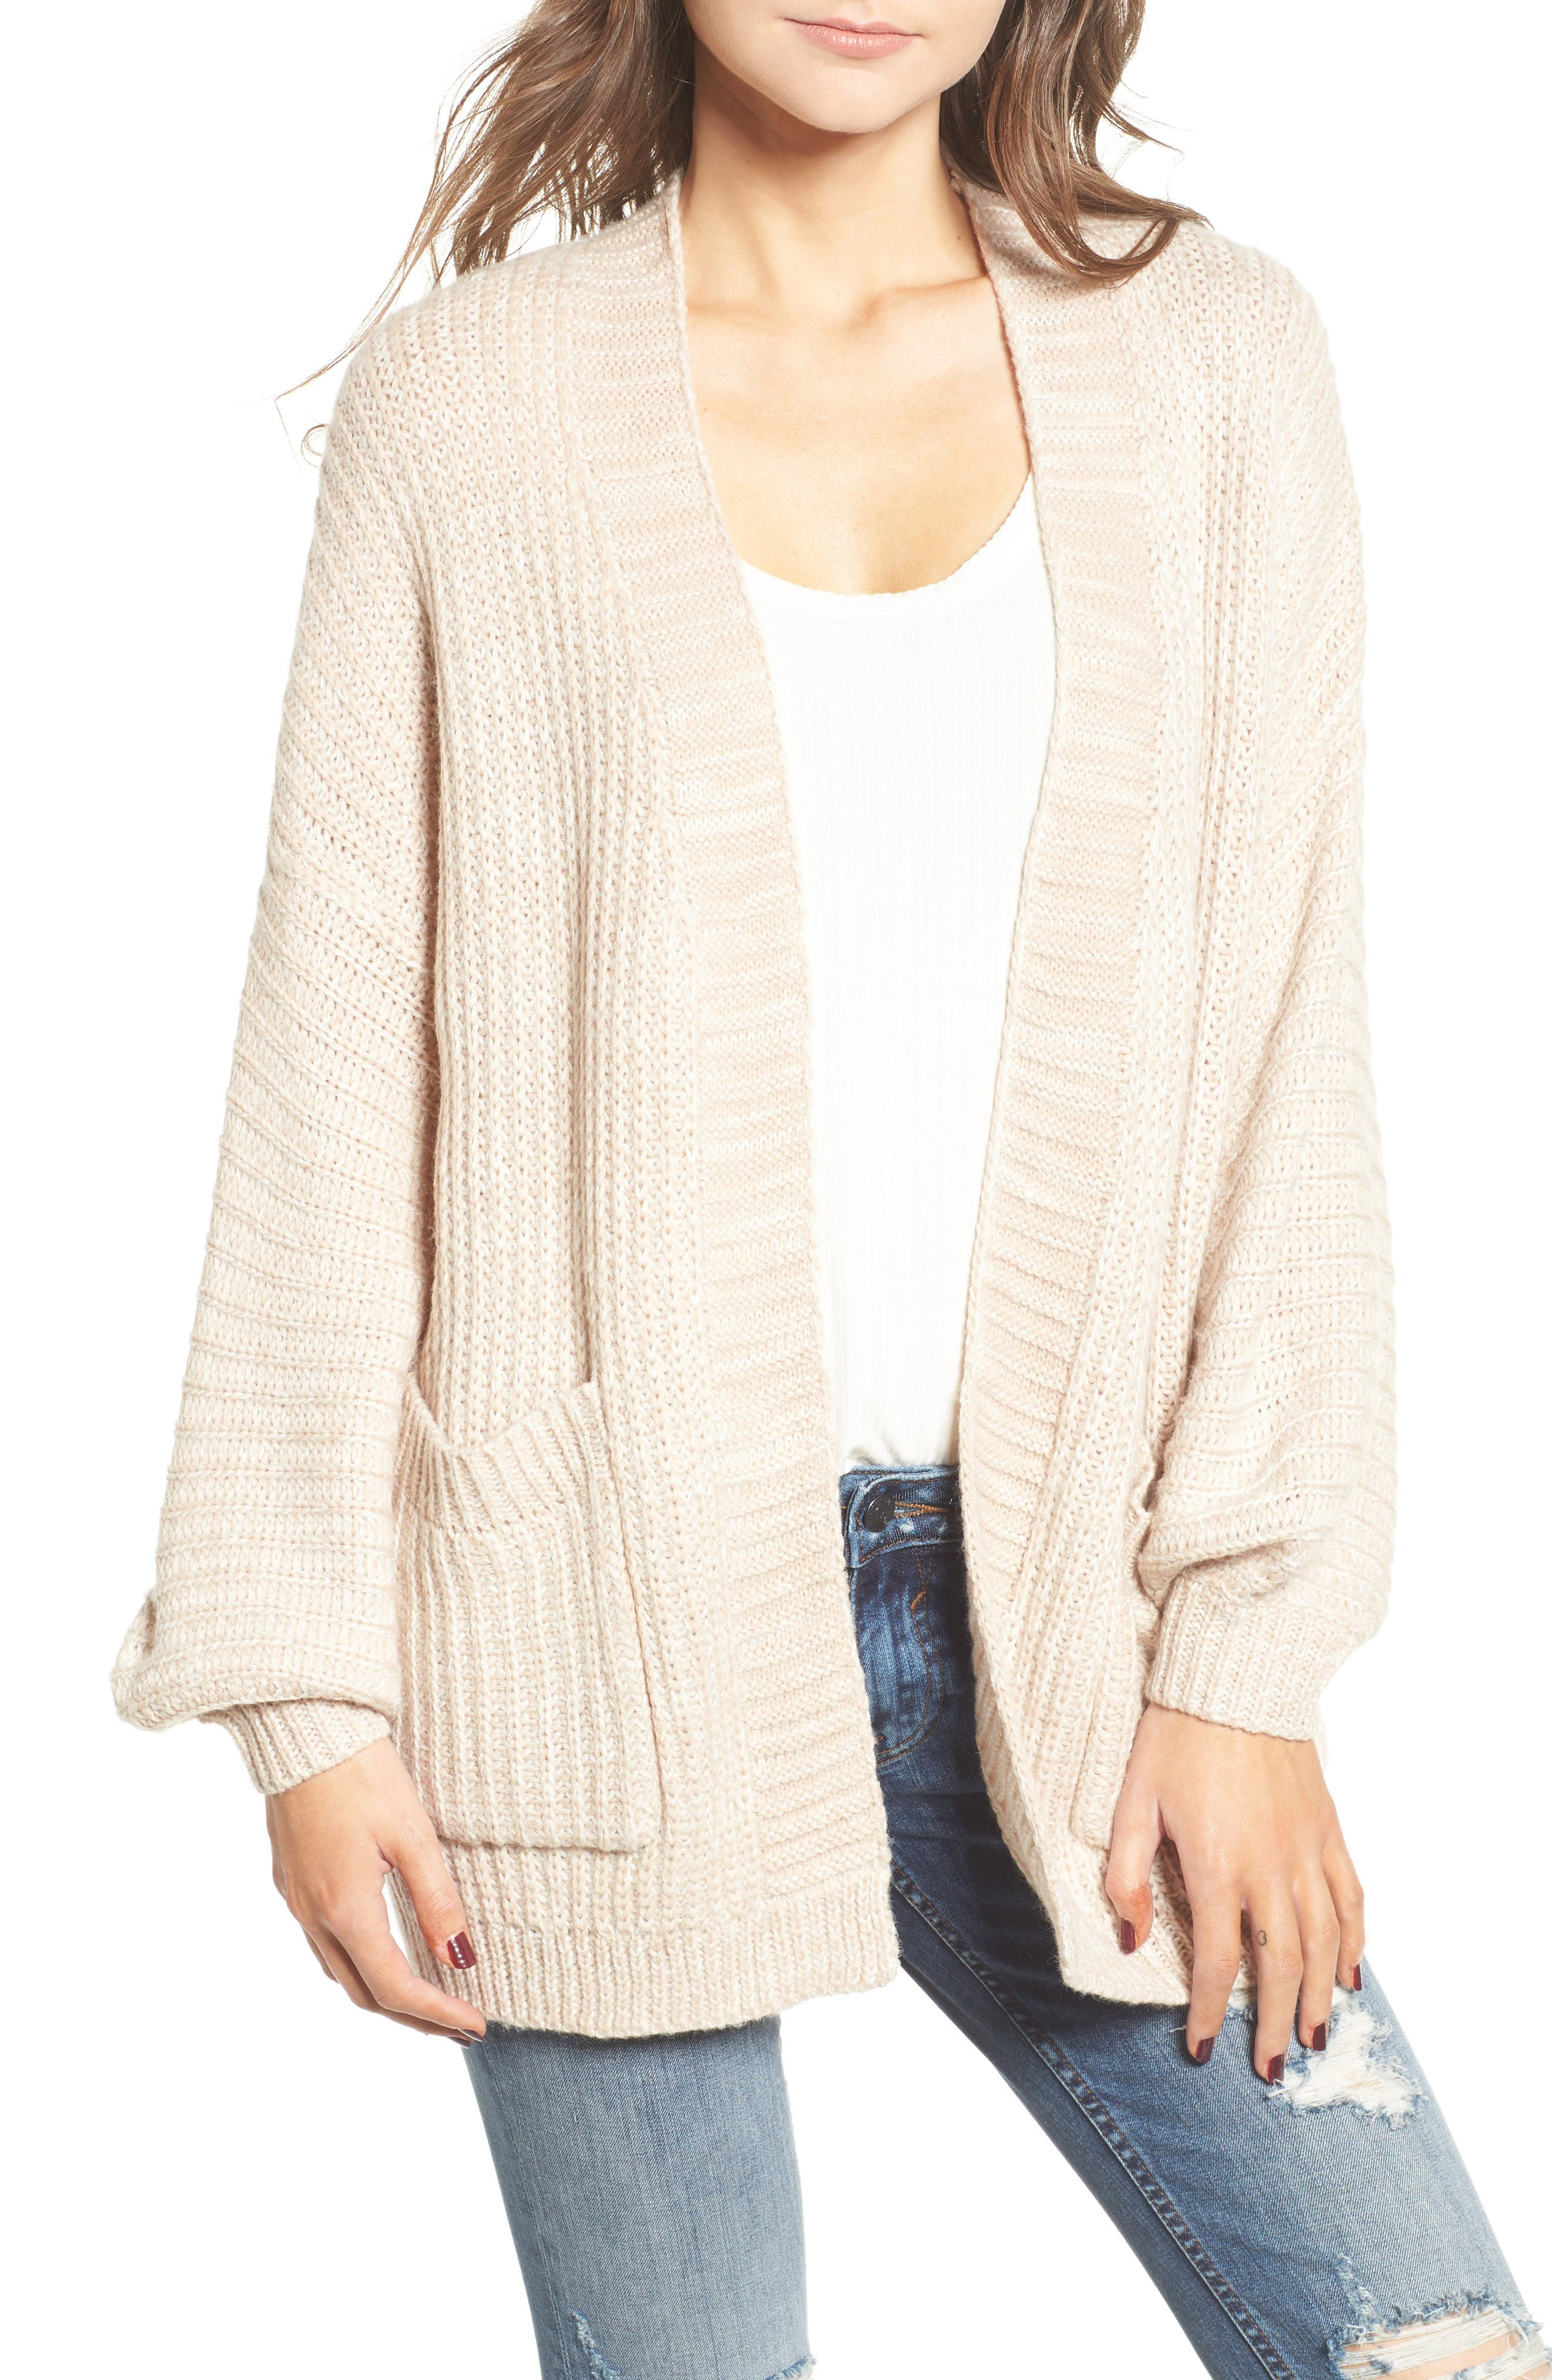 Main Image - Dreamers by Debut Drapey Sleeve Cardigan